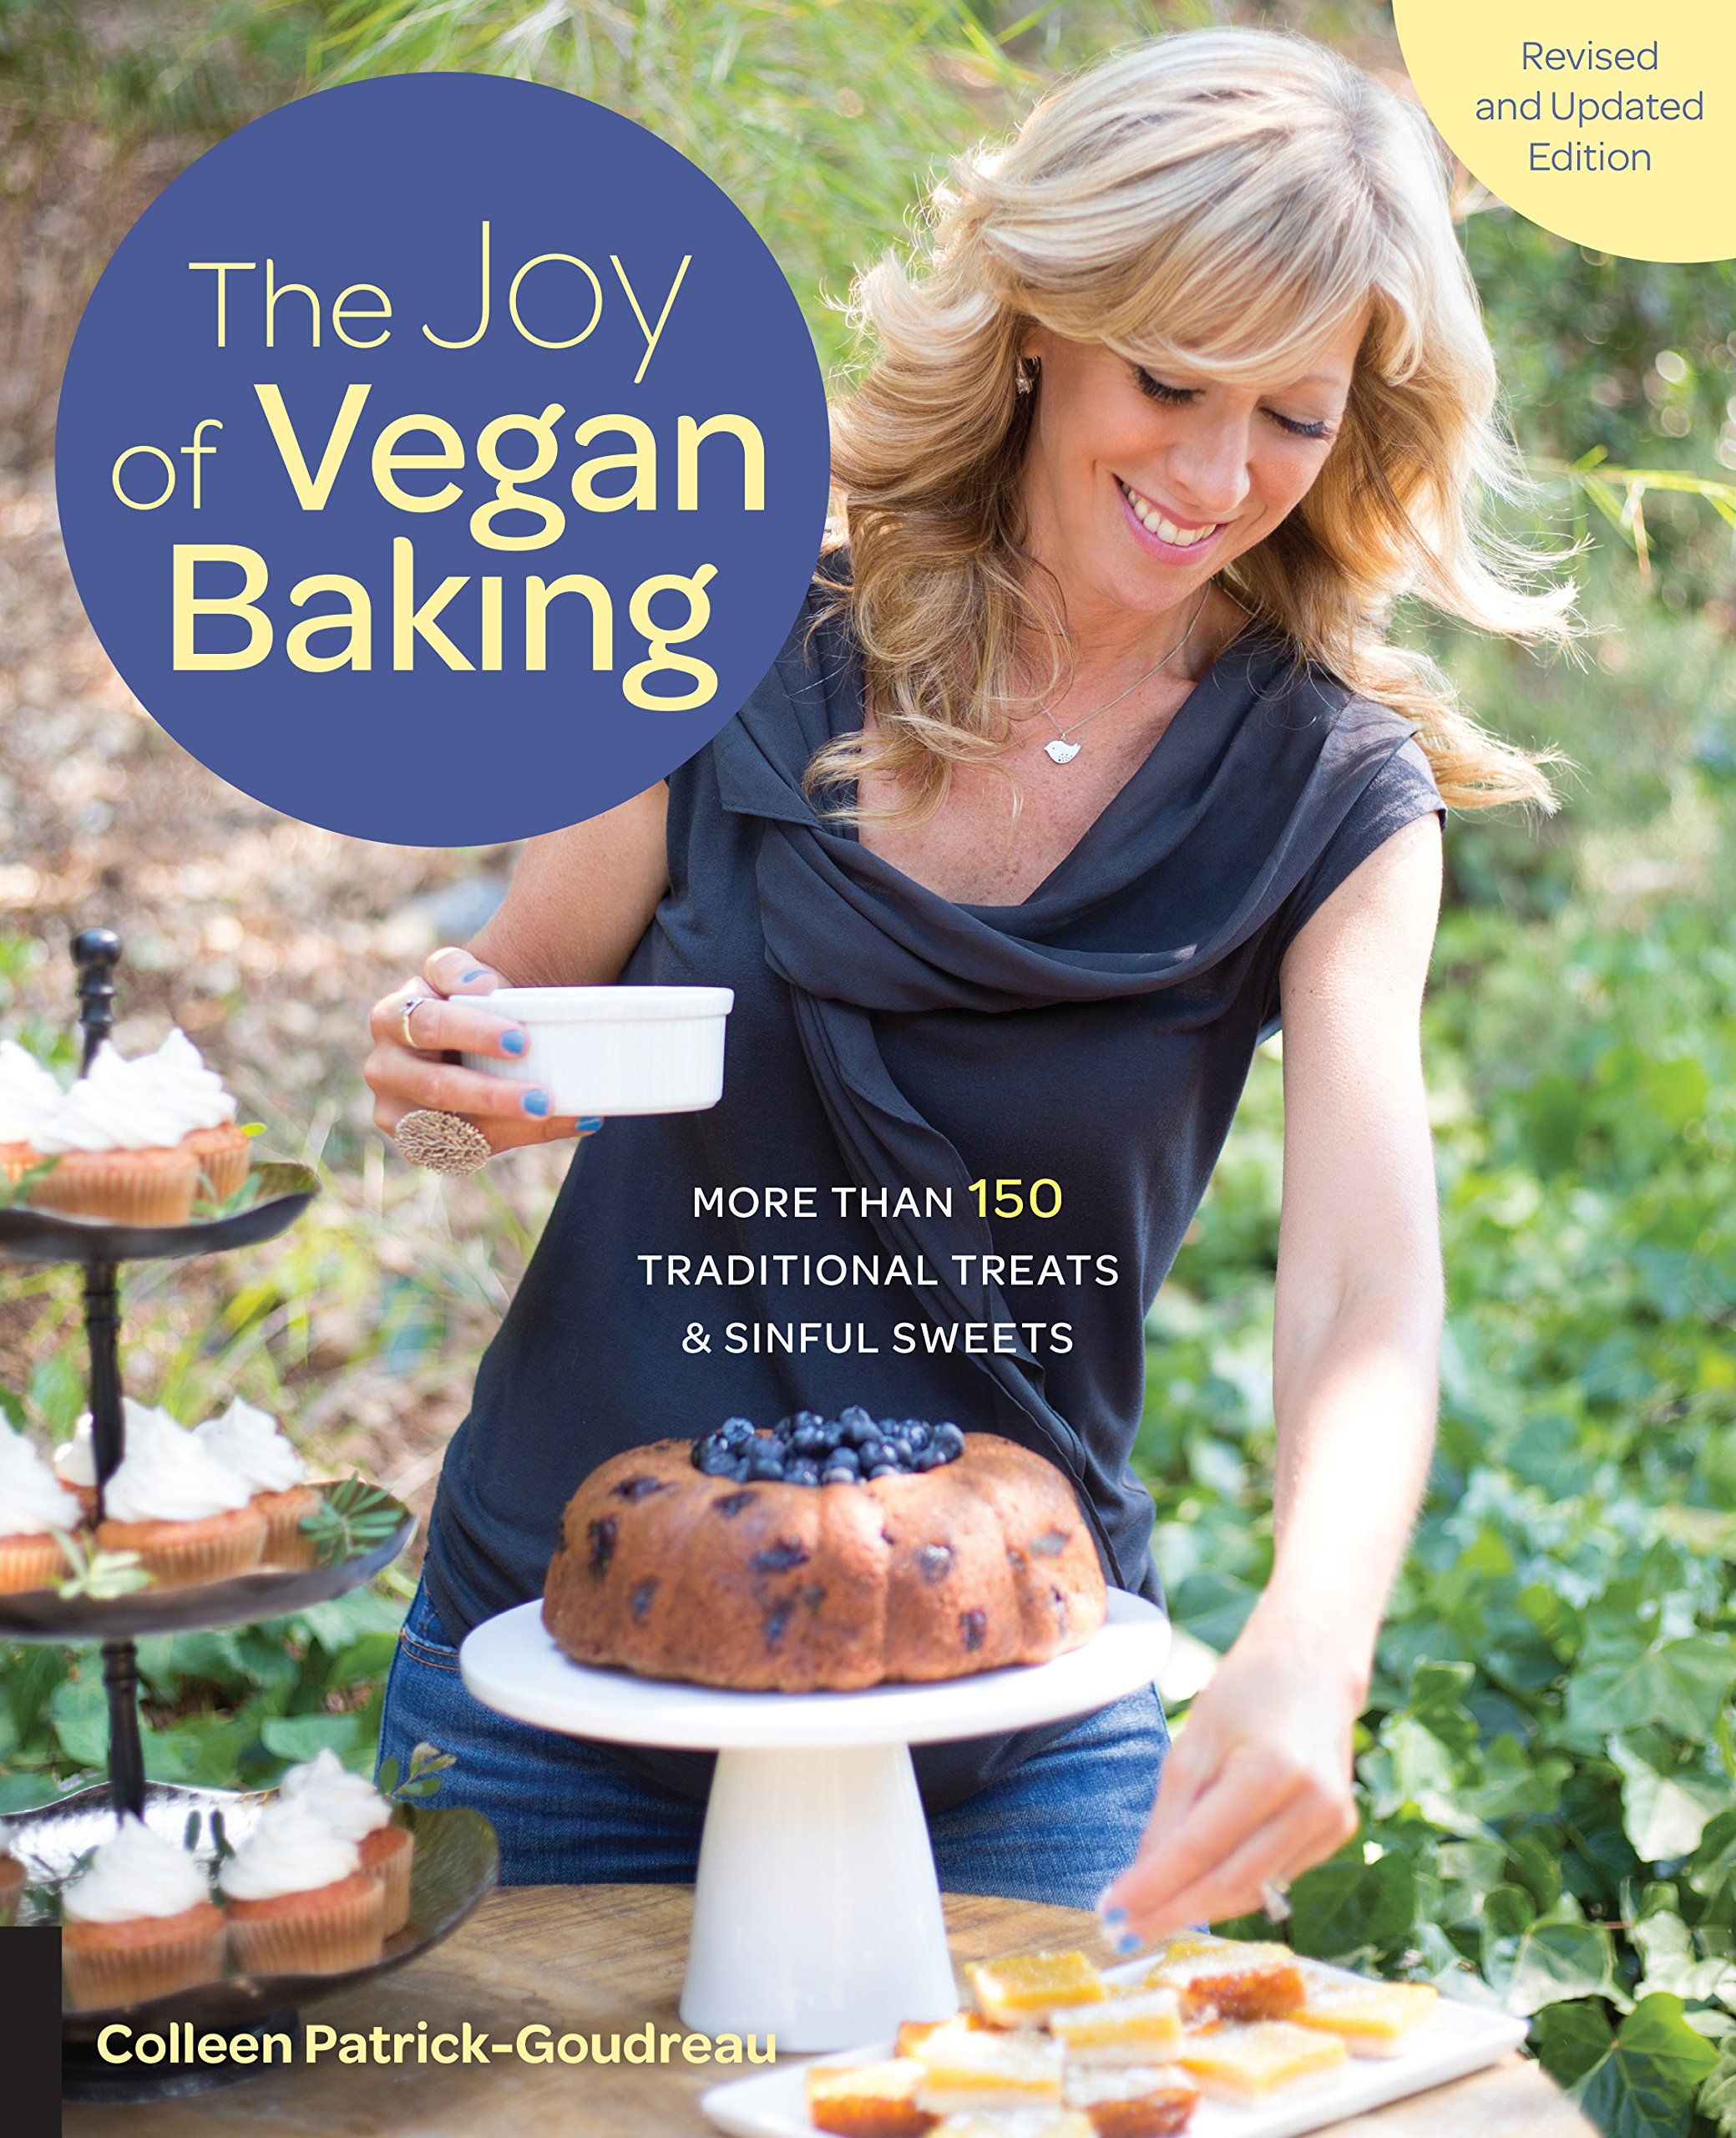 The Joy of Vegan Baking, Revised and Updated Edition: More than 150 Traditional Treats and Sinful Sweets by FAIR WINDS PRESS